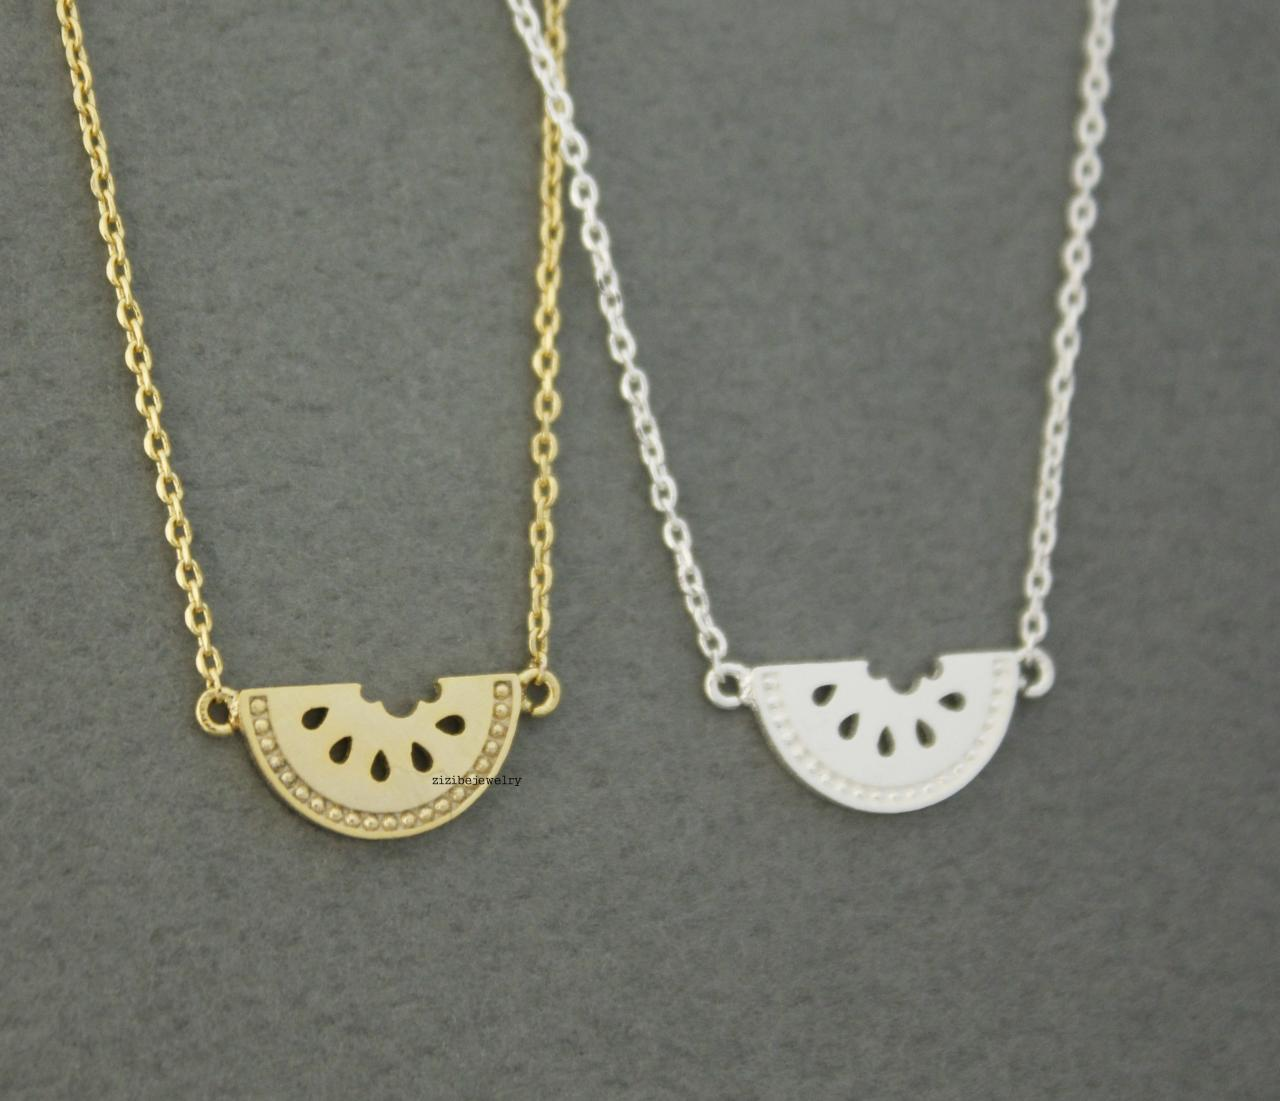 Cute Watermelon pendant necklaces in 2 colors, N0606G